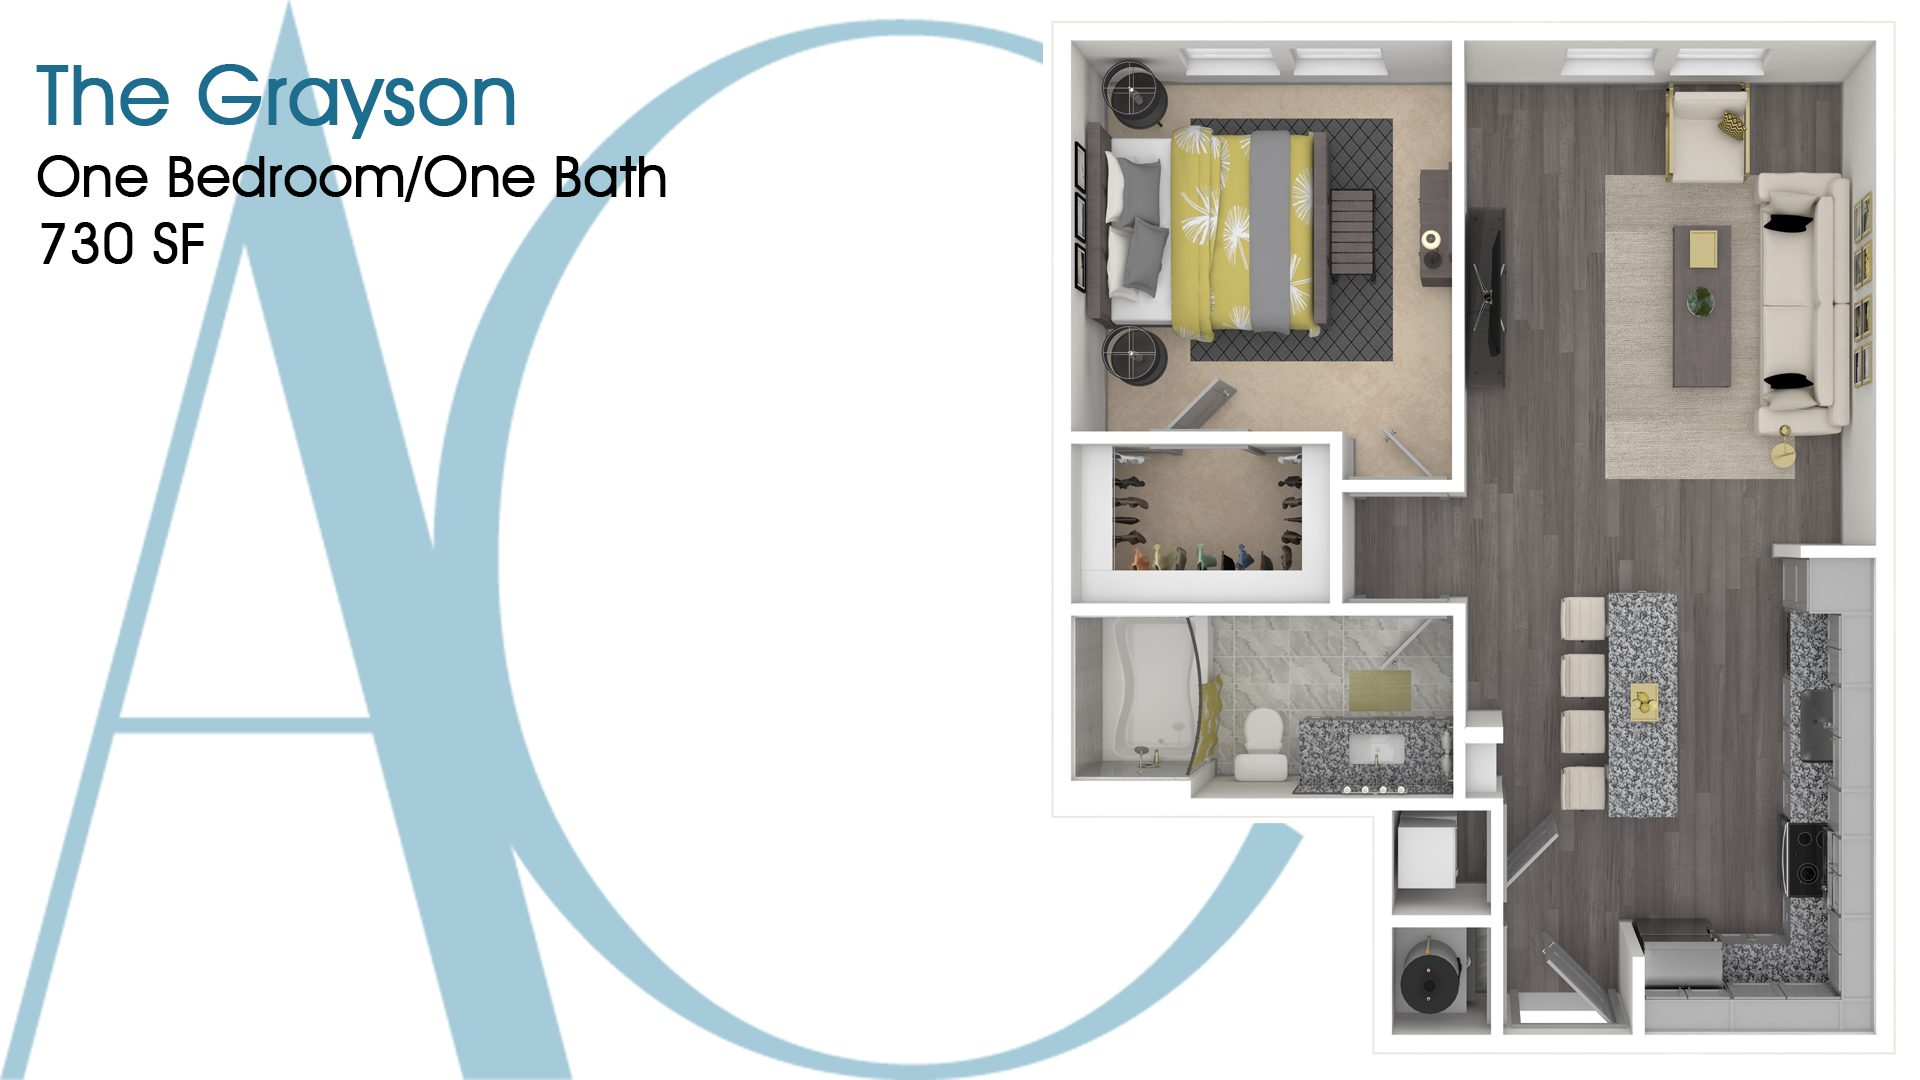 The Grayson—One-Bedroom/One-Bath Apartment—730 SQ. FT.